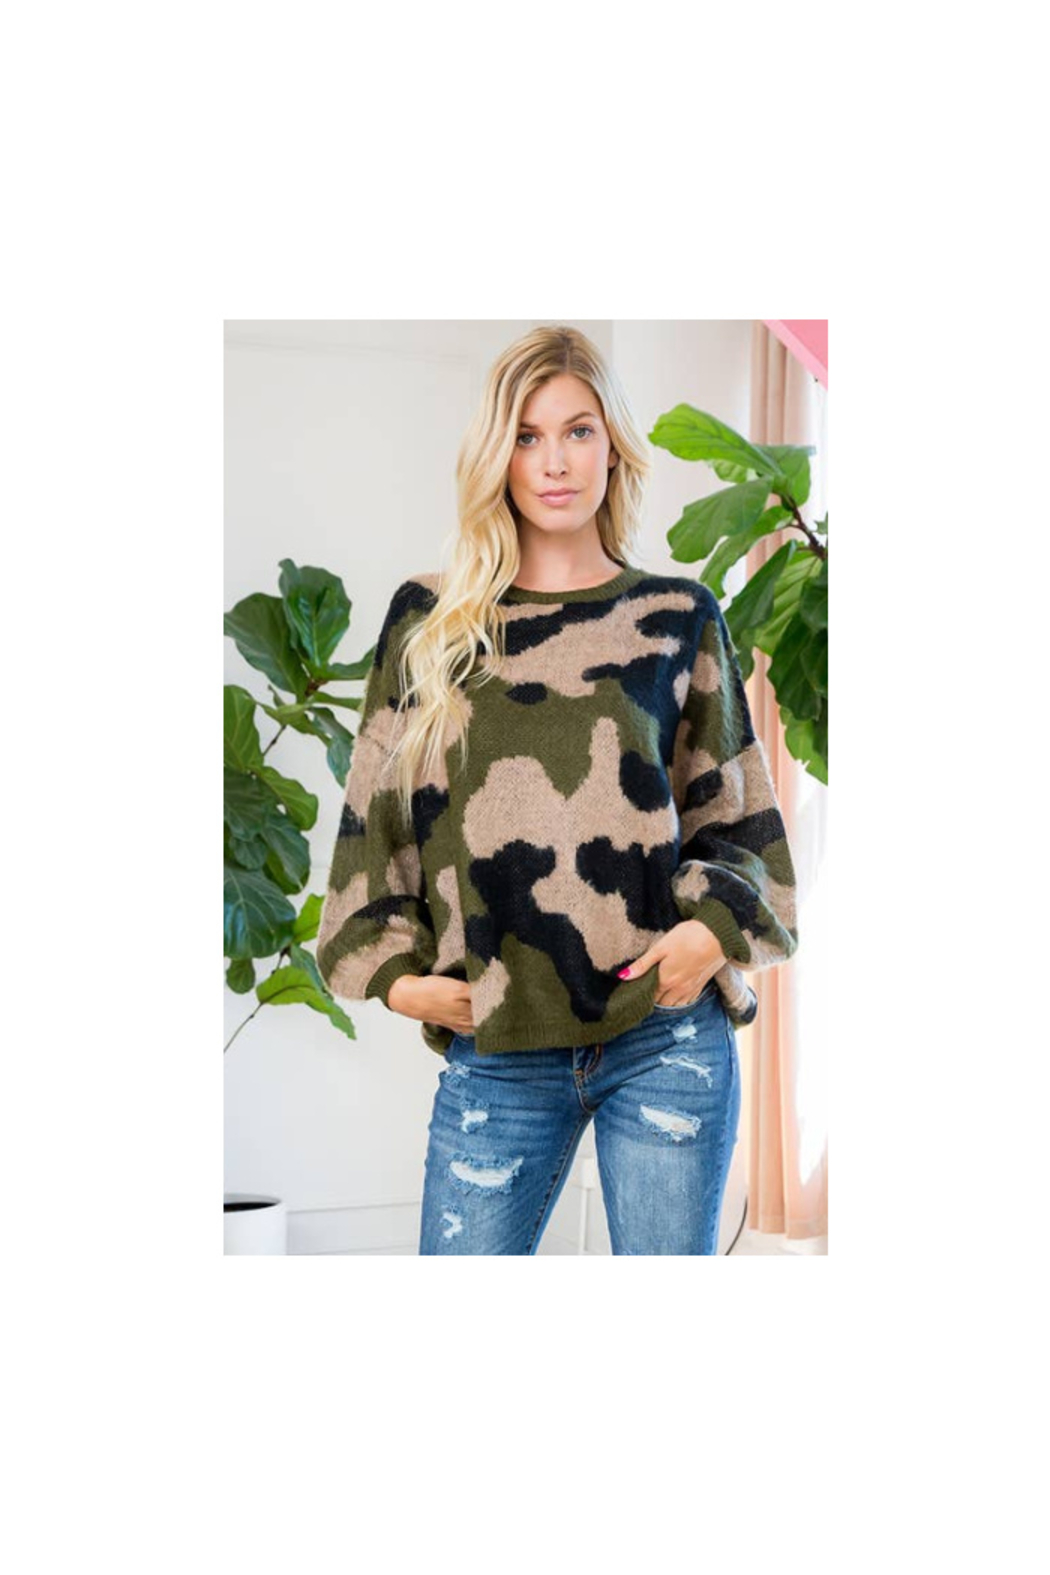 The Birds Nest CAMO SWEATER - Main Image